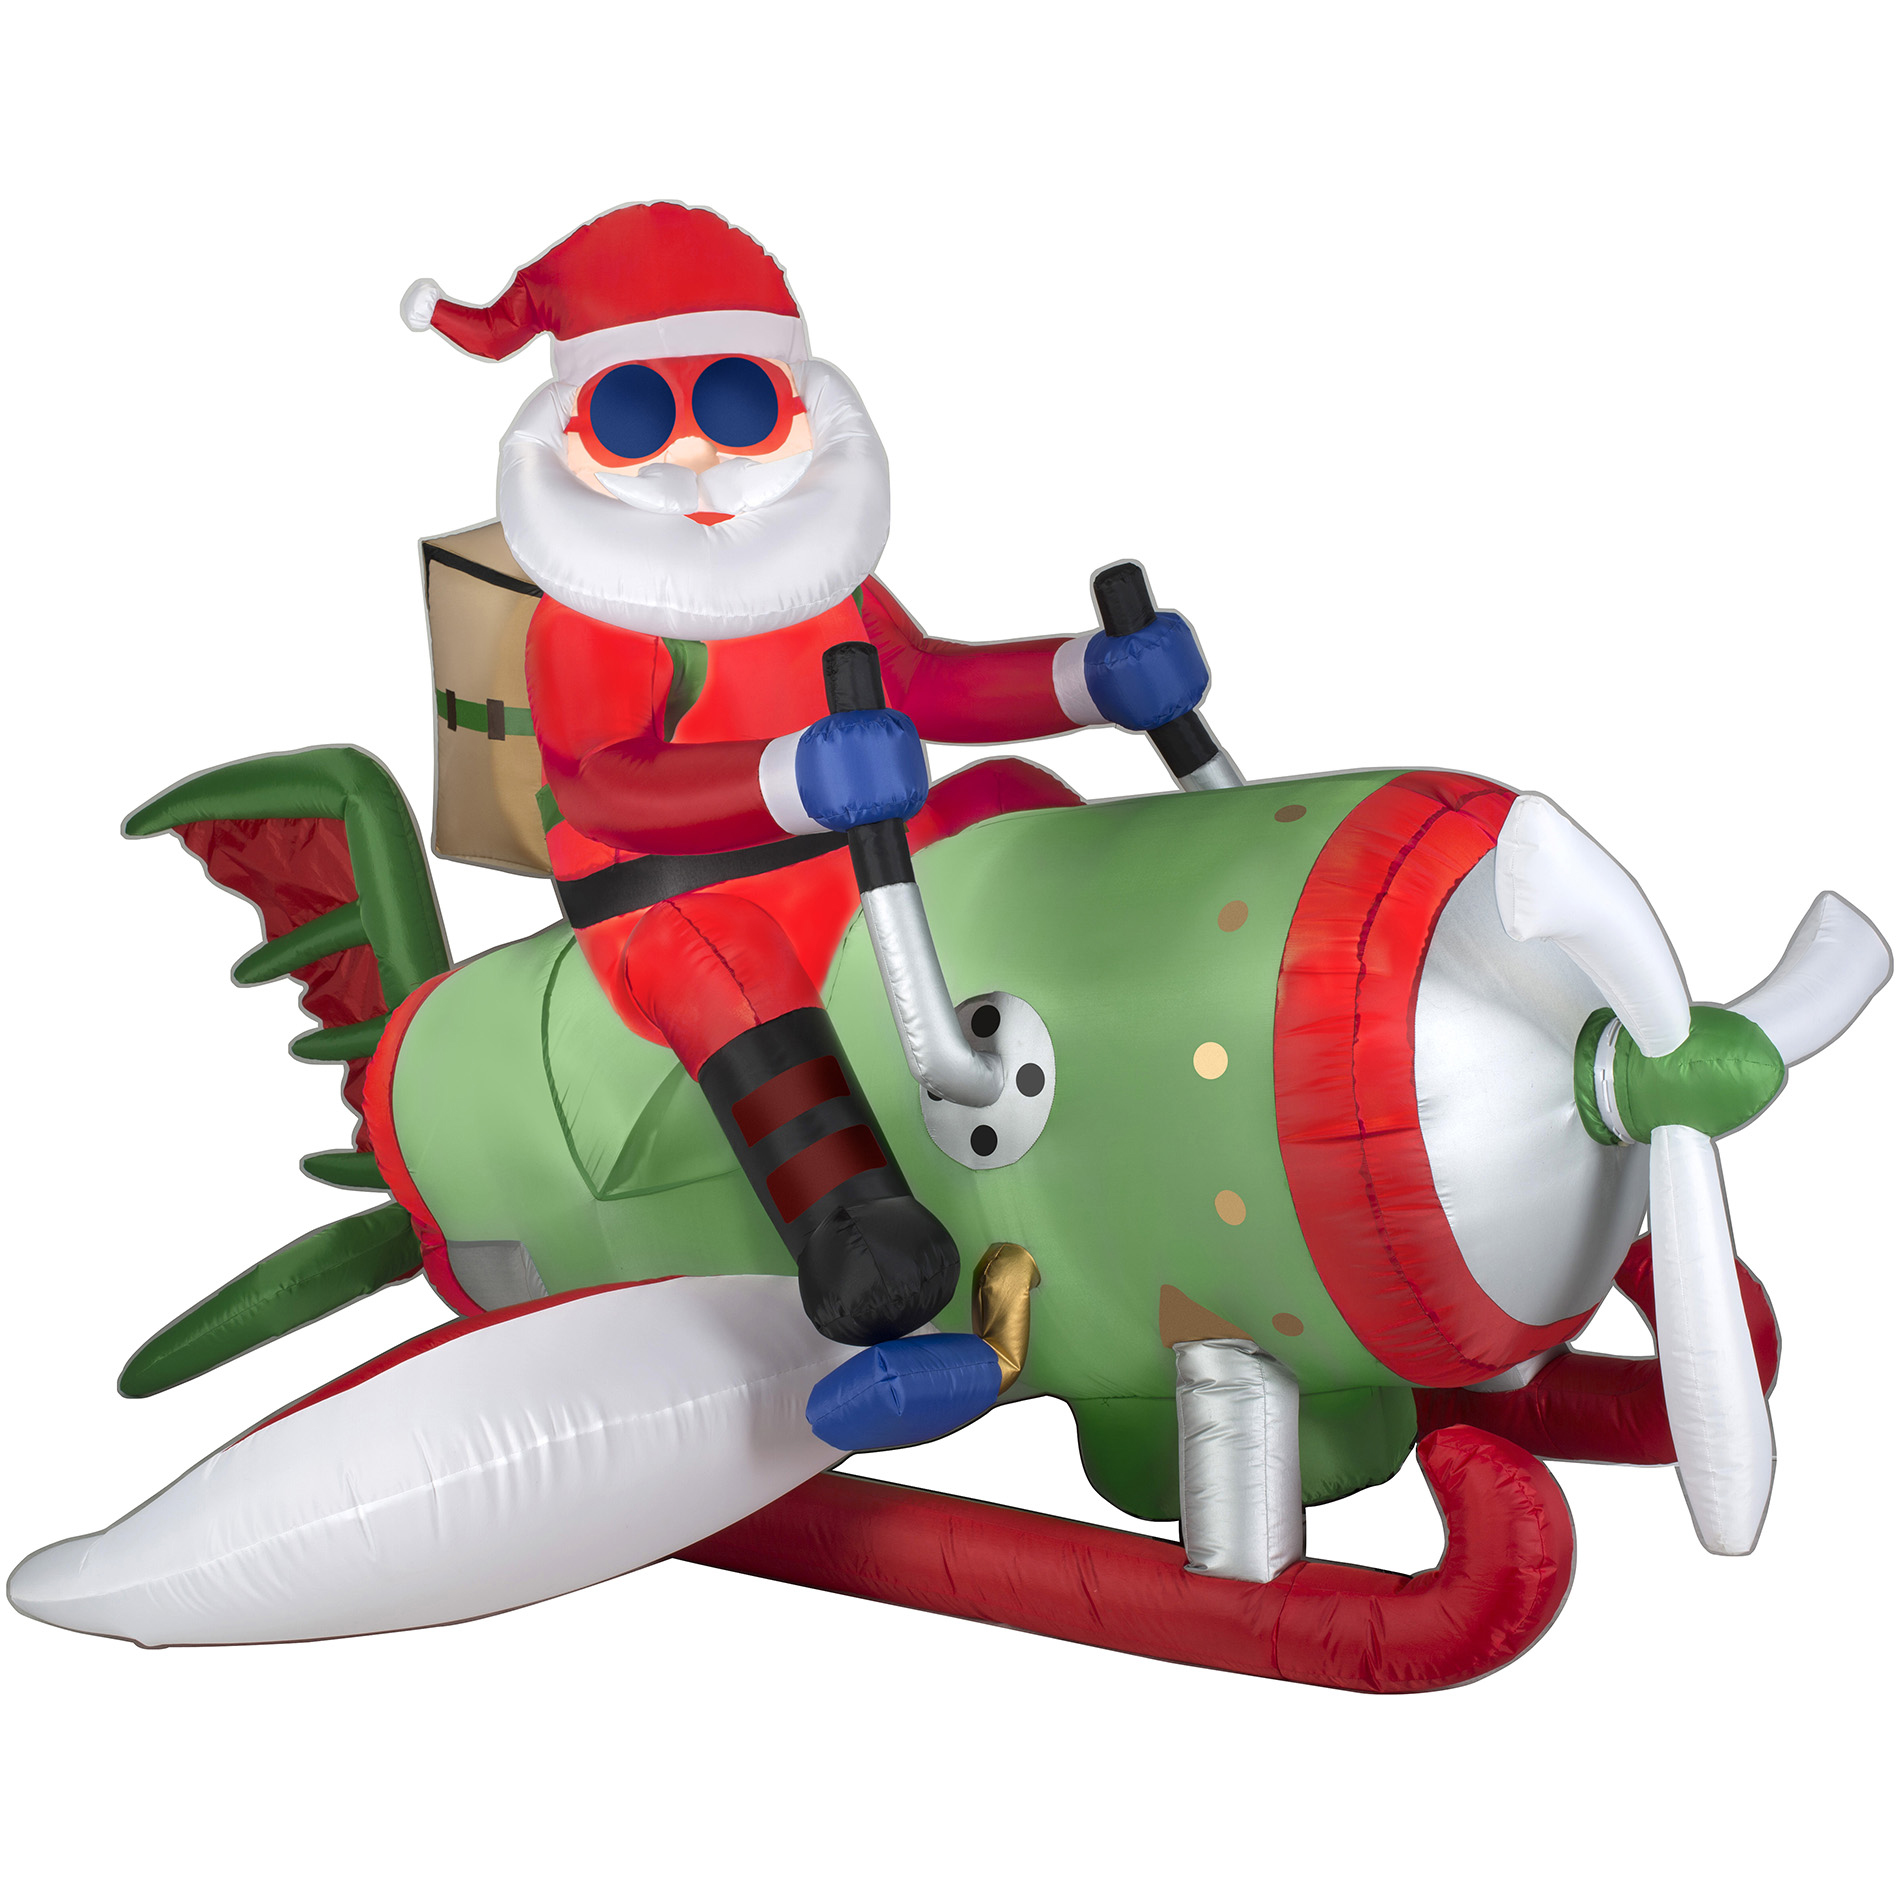 Elf Shoes Australia 6 5 39 Animated Airblown Santa On Flying Machine With Lights